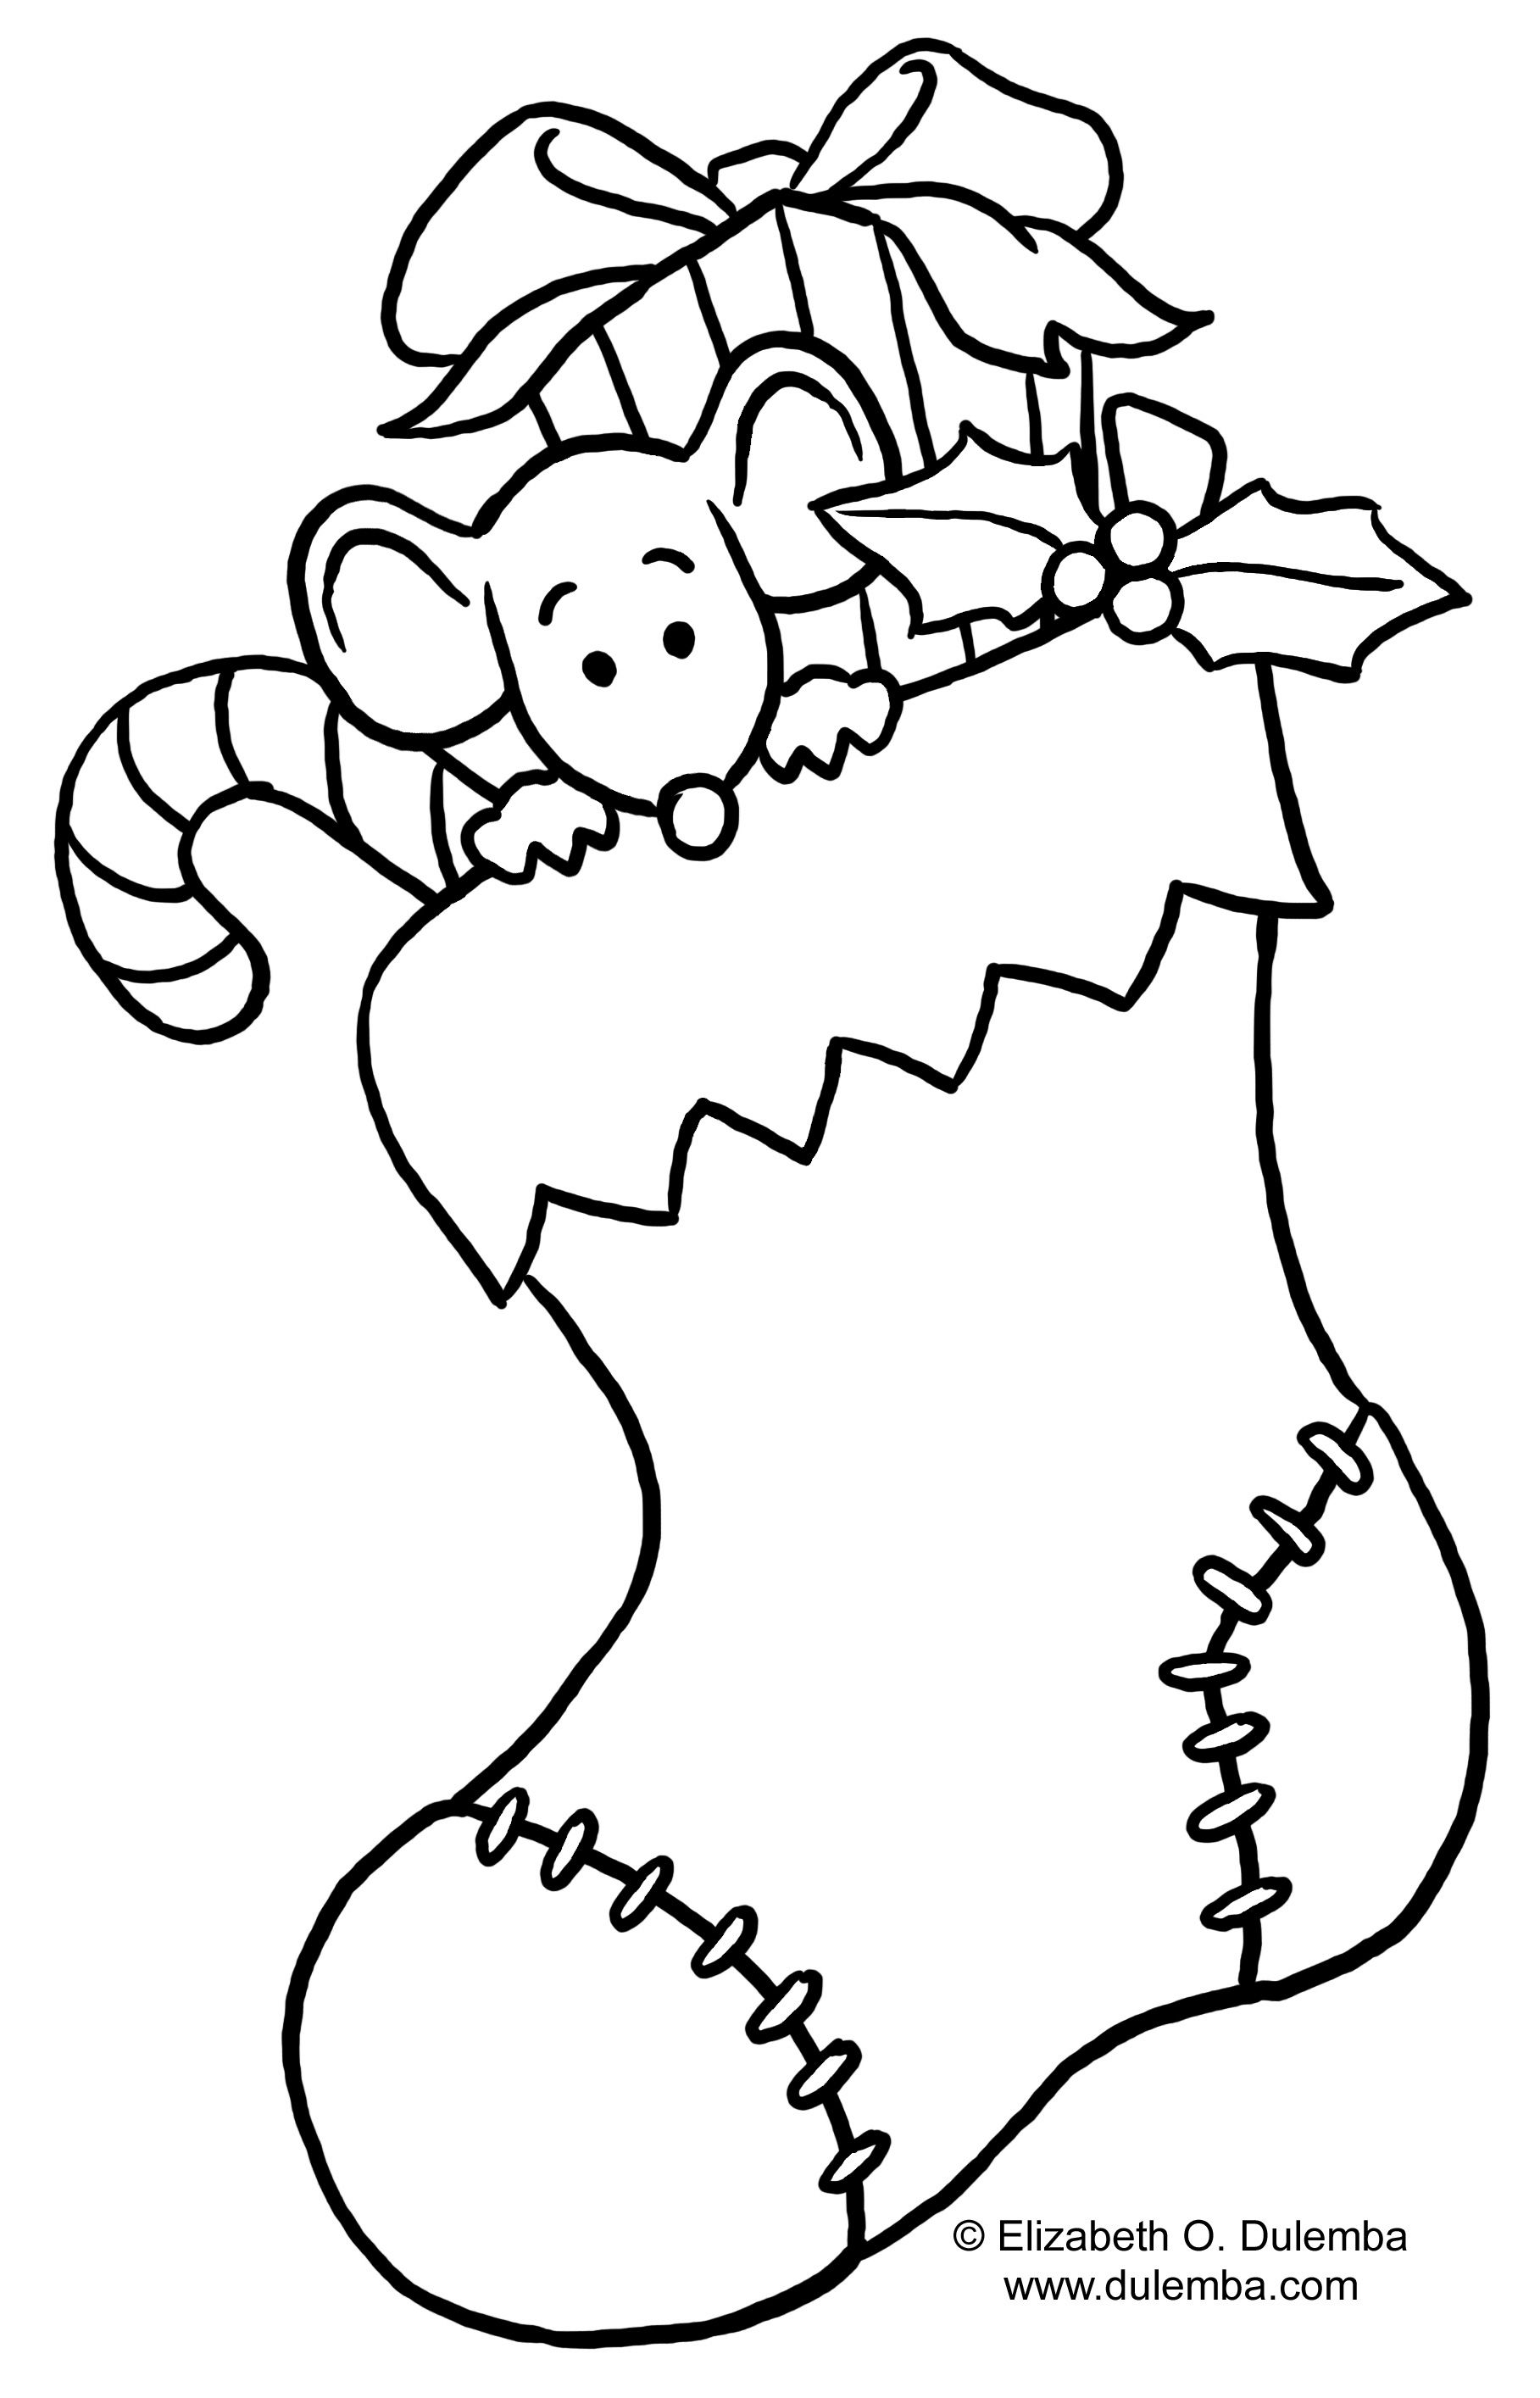 http://www.justcoloring.com/images/Christmas-coloring